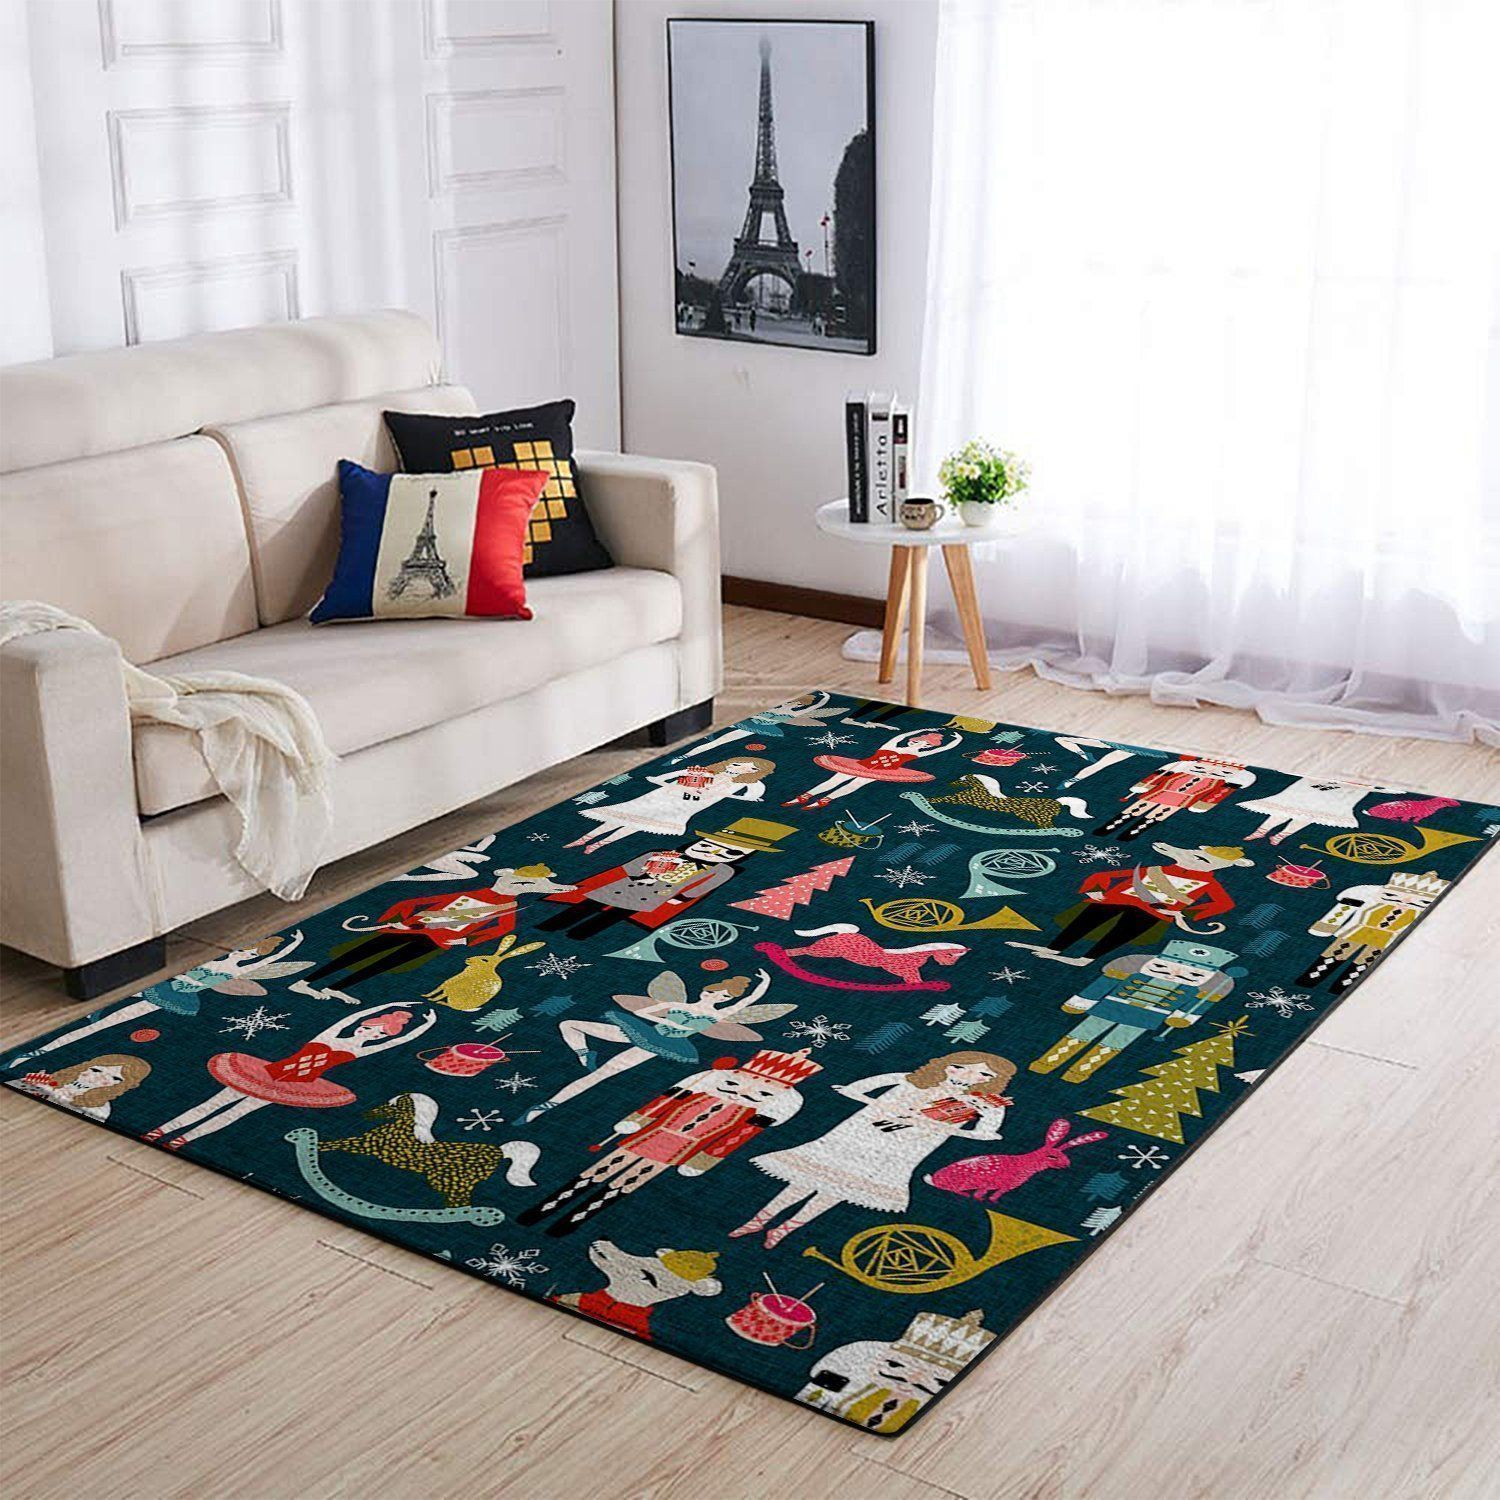 Nutcracker Area Rugs, Movie Living Room Carpet, Custom Floor Decor